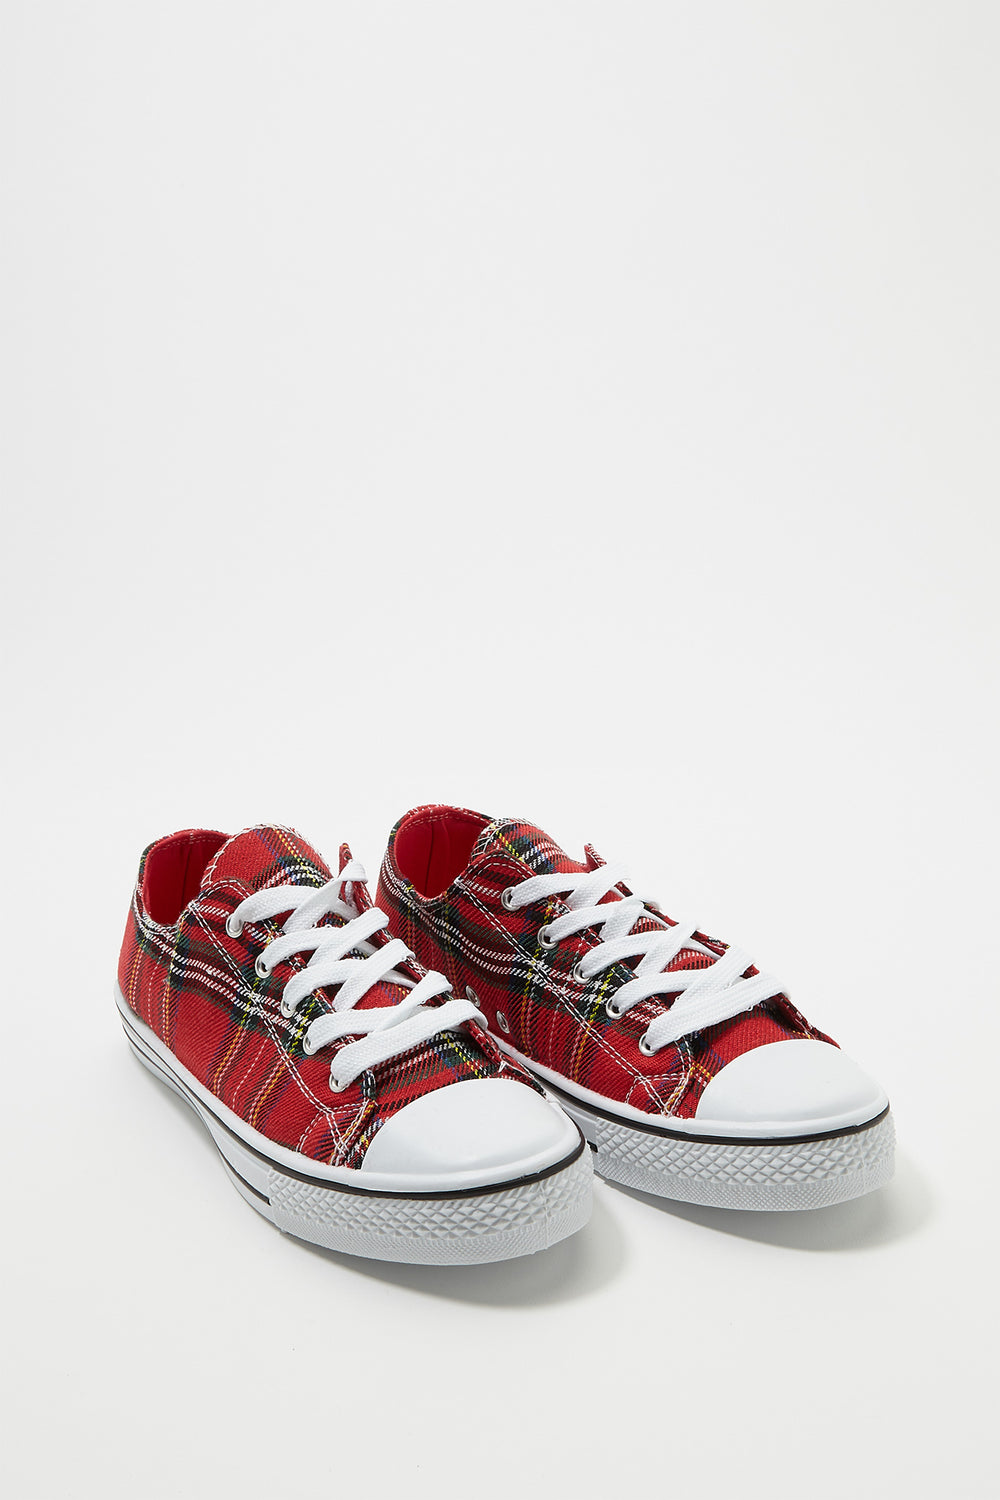 Printed Canvas Lace-Up Sneaker Multi